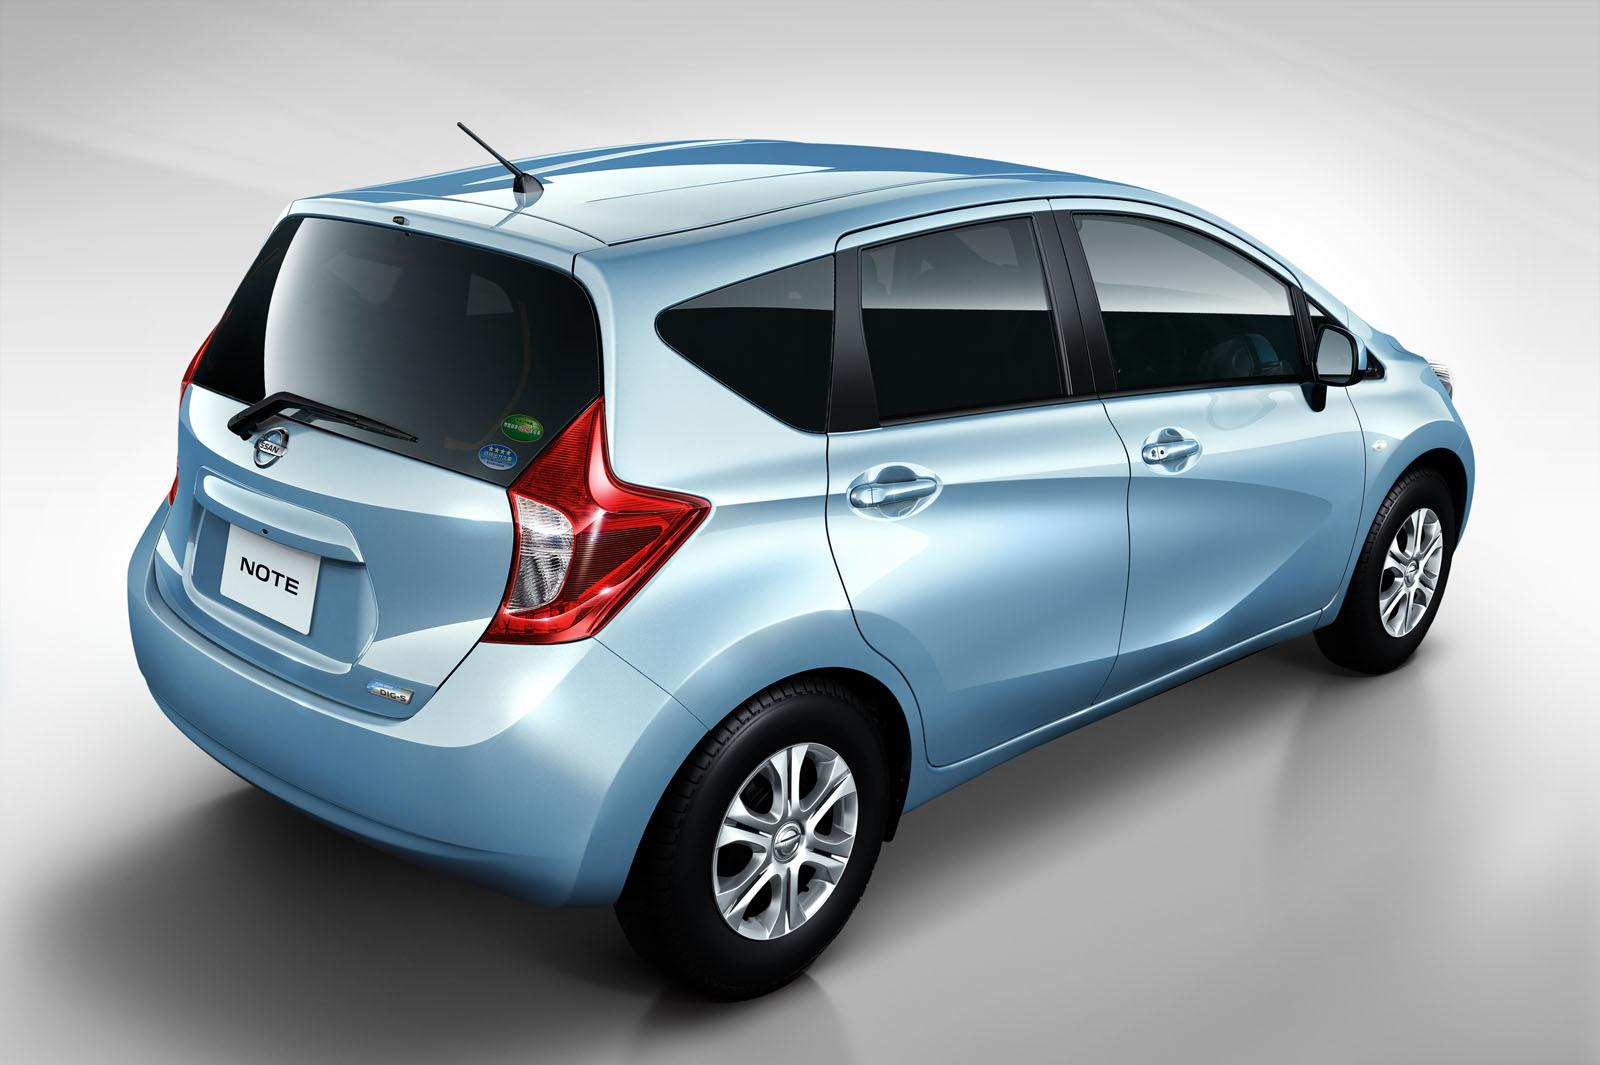 2013 Nissan Note A New Global Compact Car